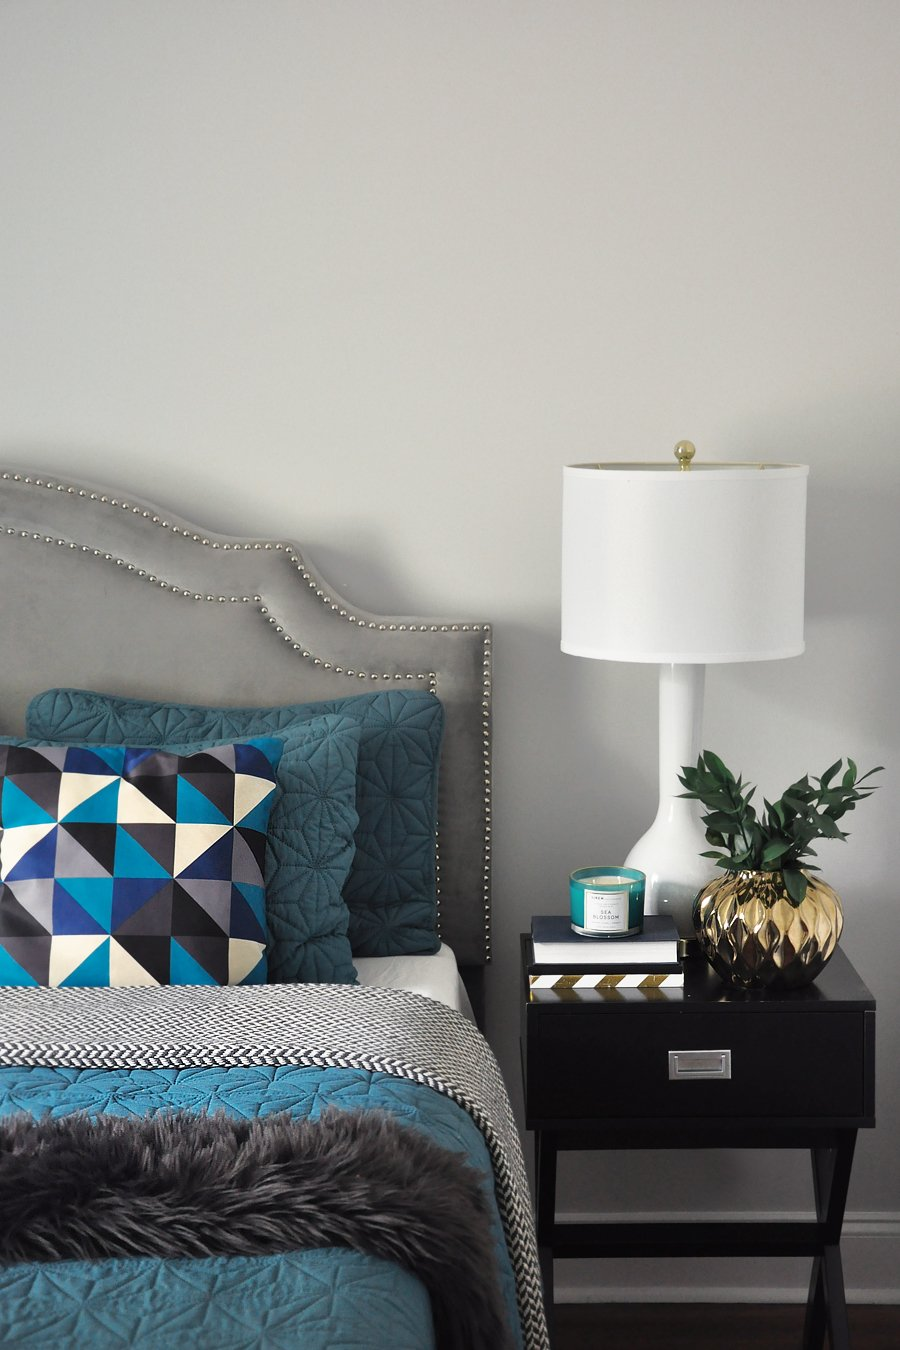 Shop Our House: Product Links and Room Tours